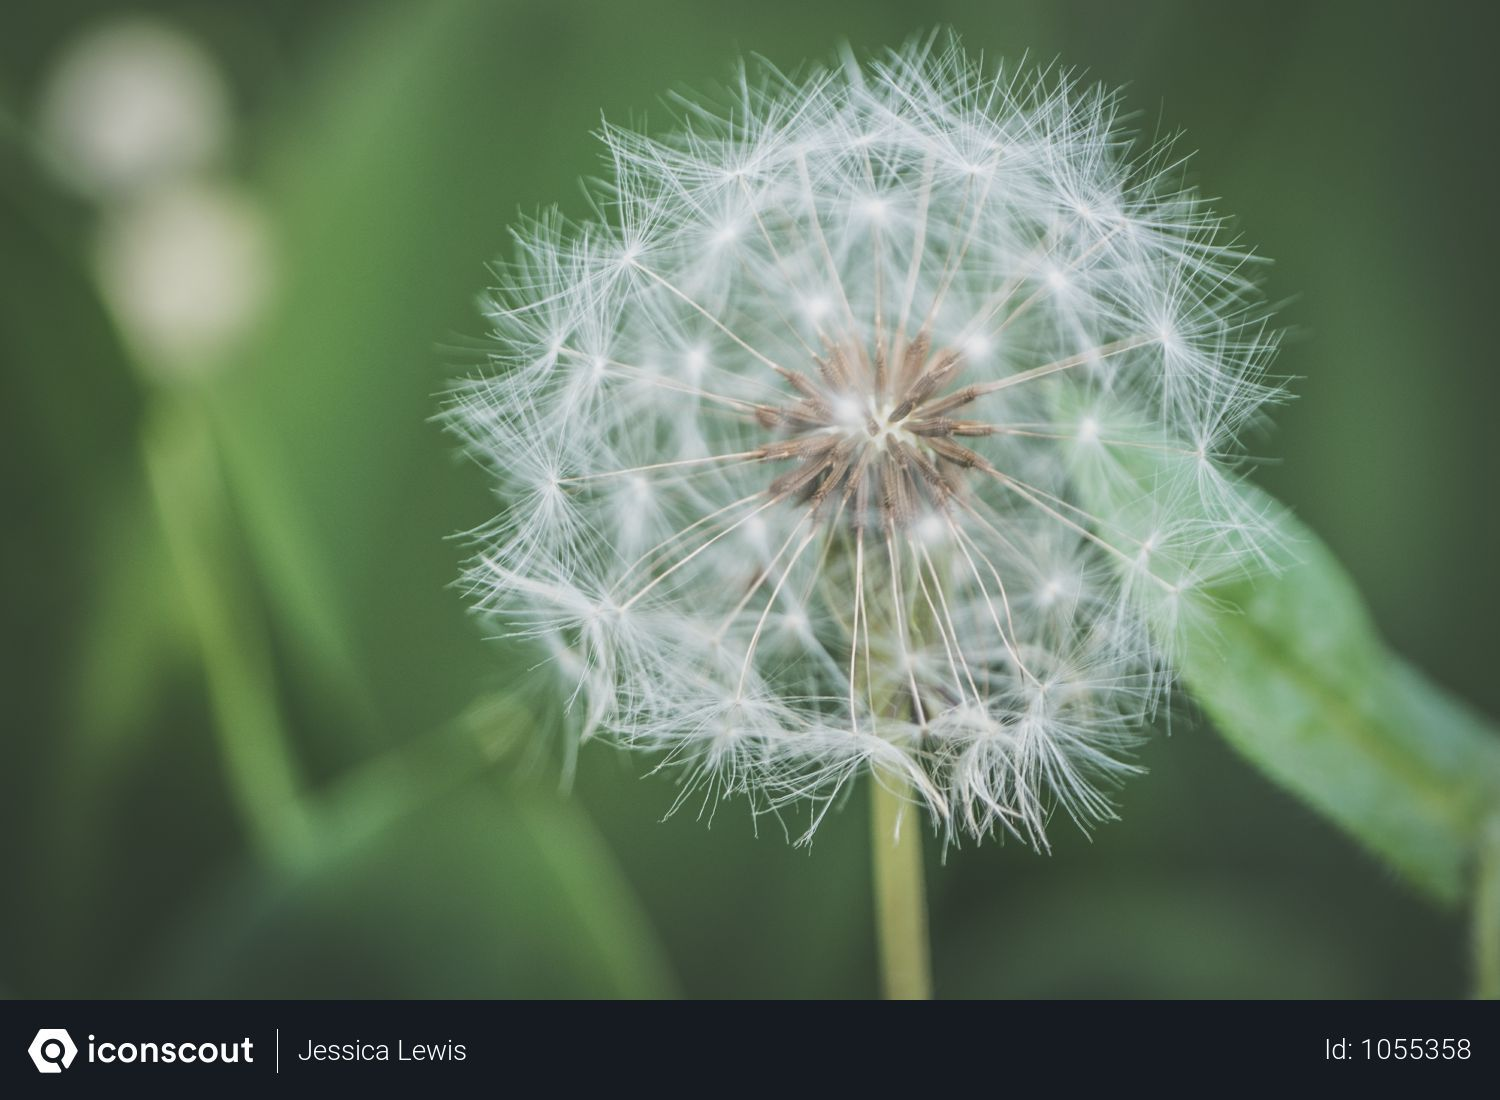 Free Shallow Focus Photography Of White Dandelion Flower Photo Download In Png Jpg Format Dandelion Flower White Dandelion Flower Photos